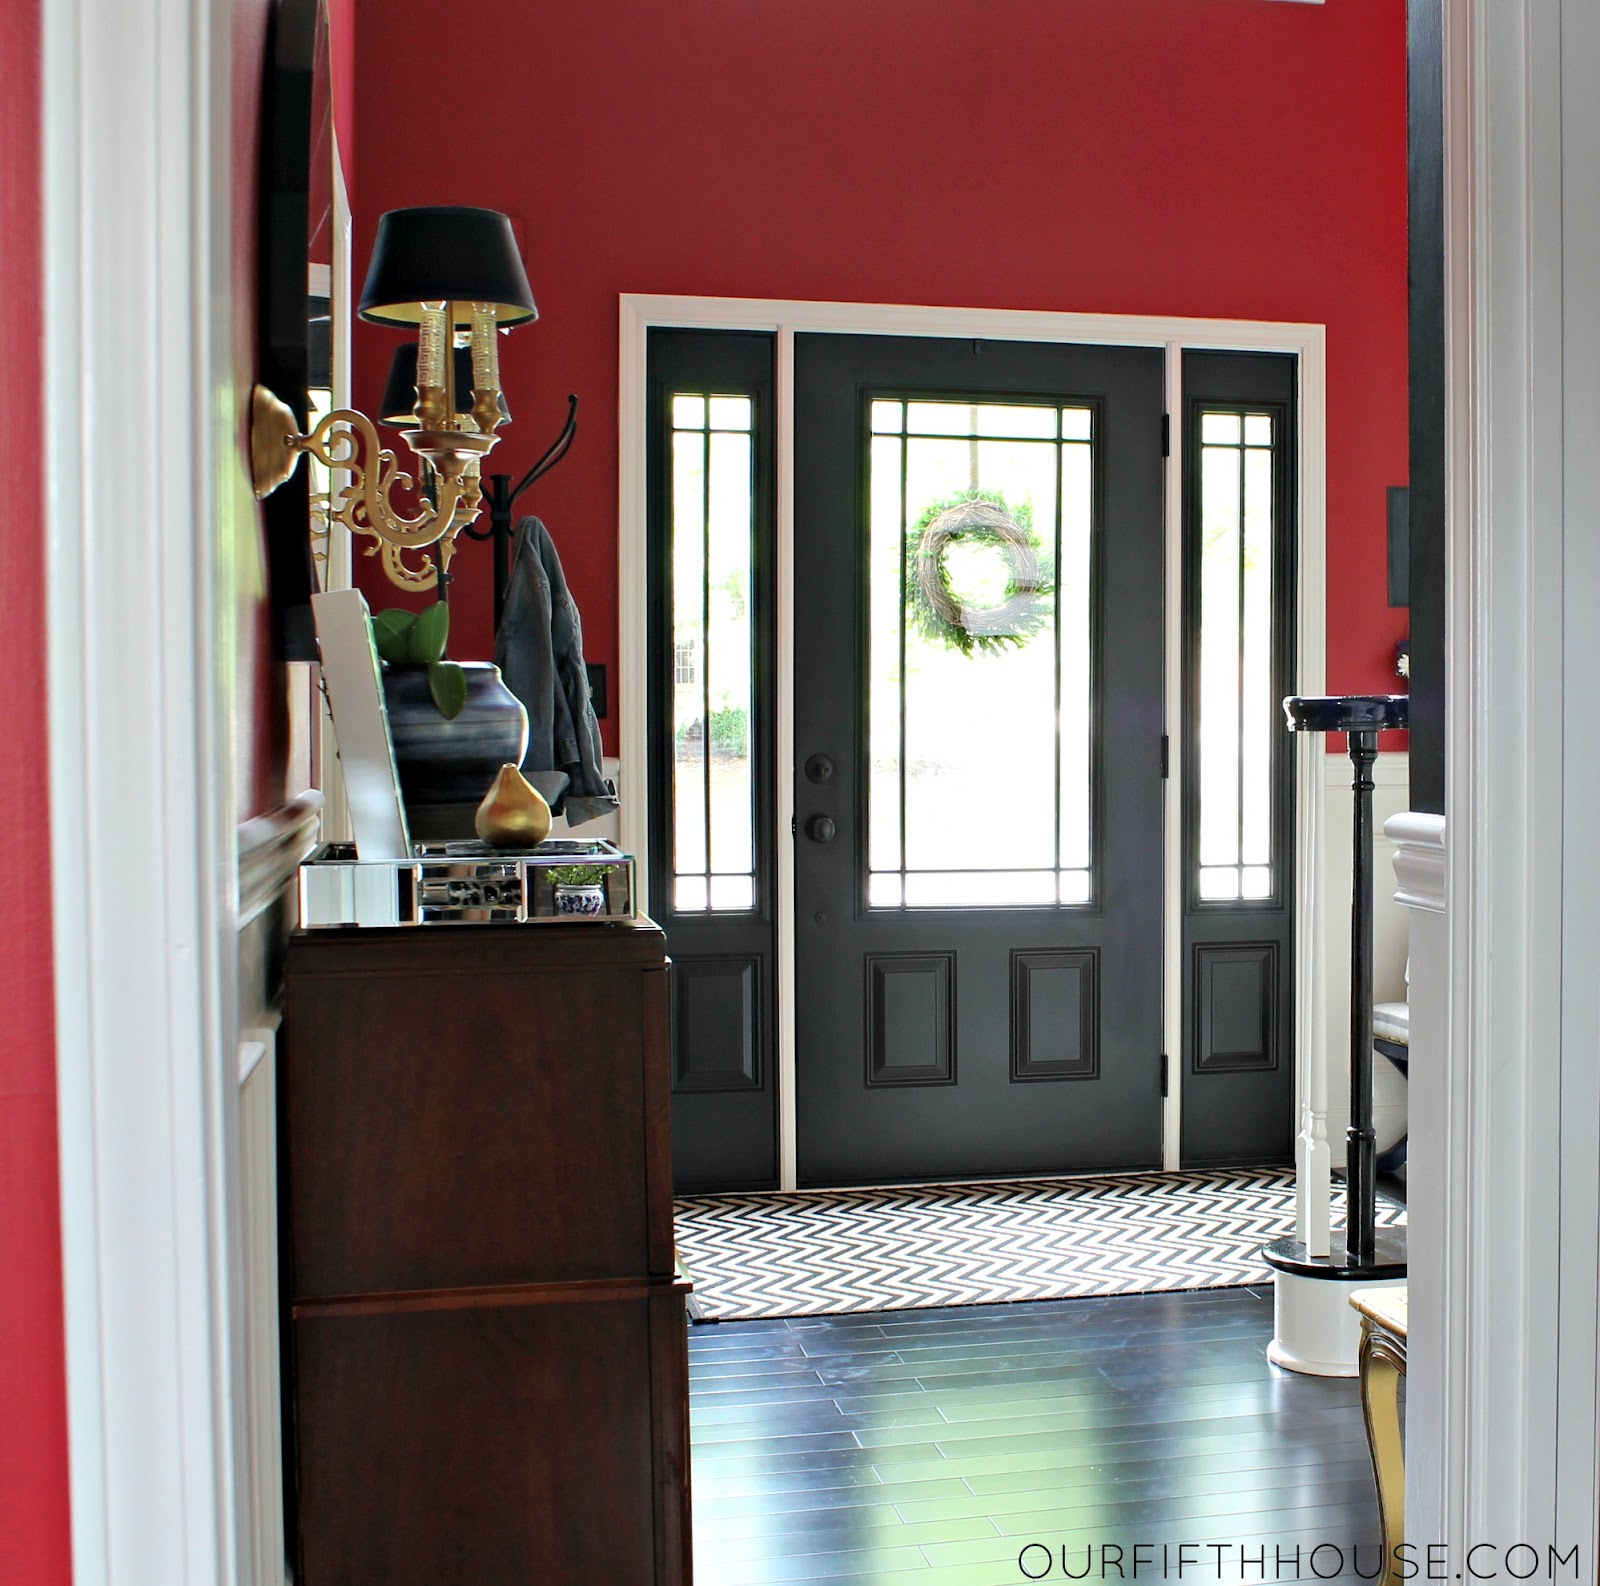 Home Remodeling Design: May 2015